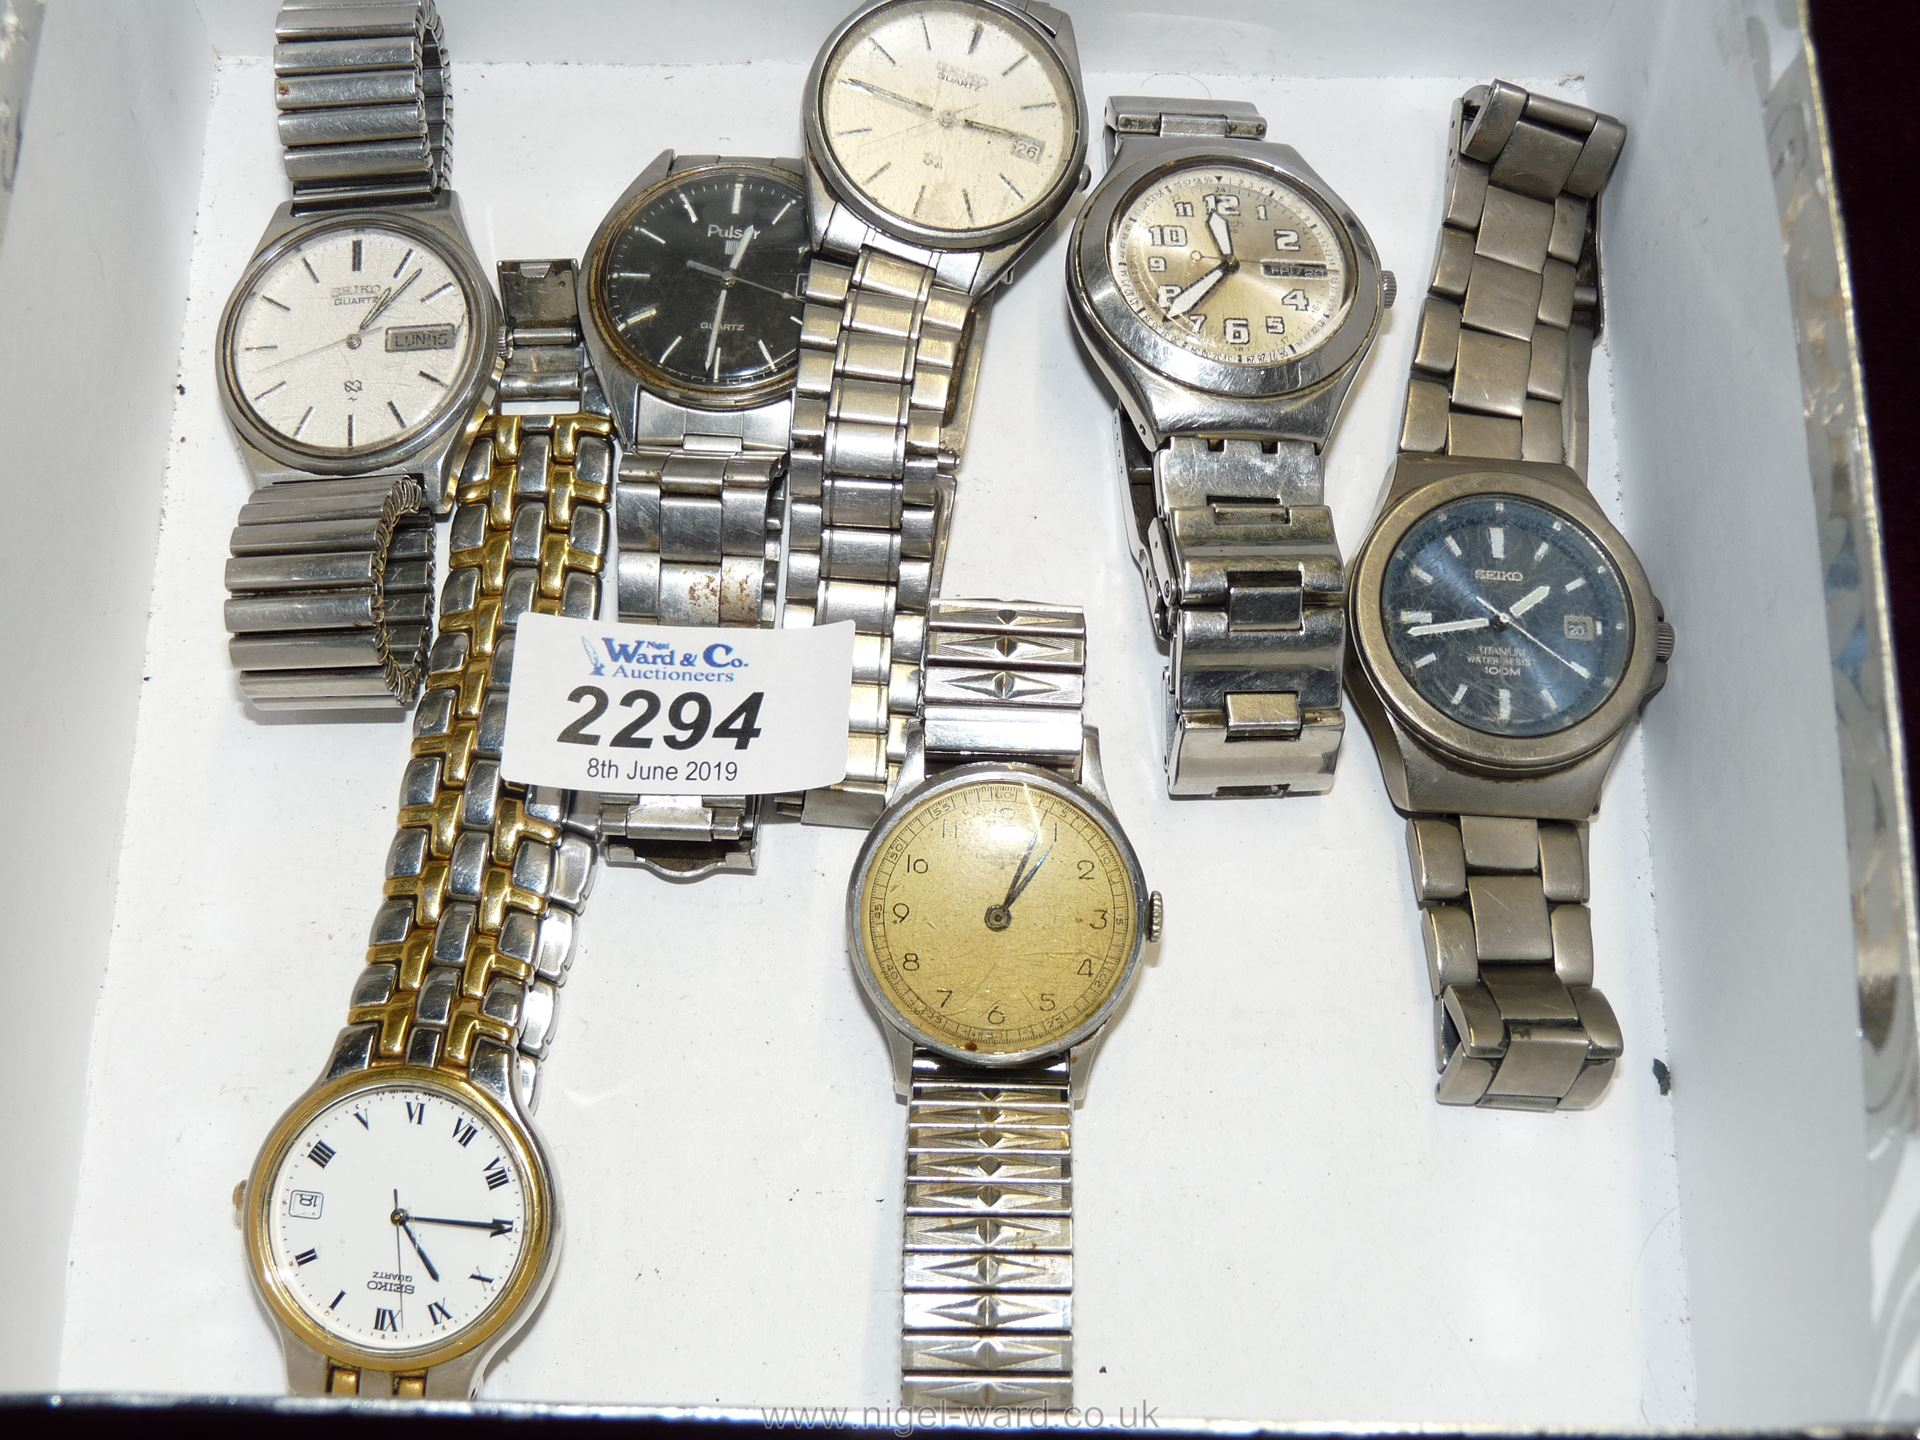 Lot 2294 - Seven gent's Watches including four Seiko, Swatch, Longines and Pulsar.